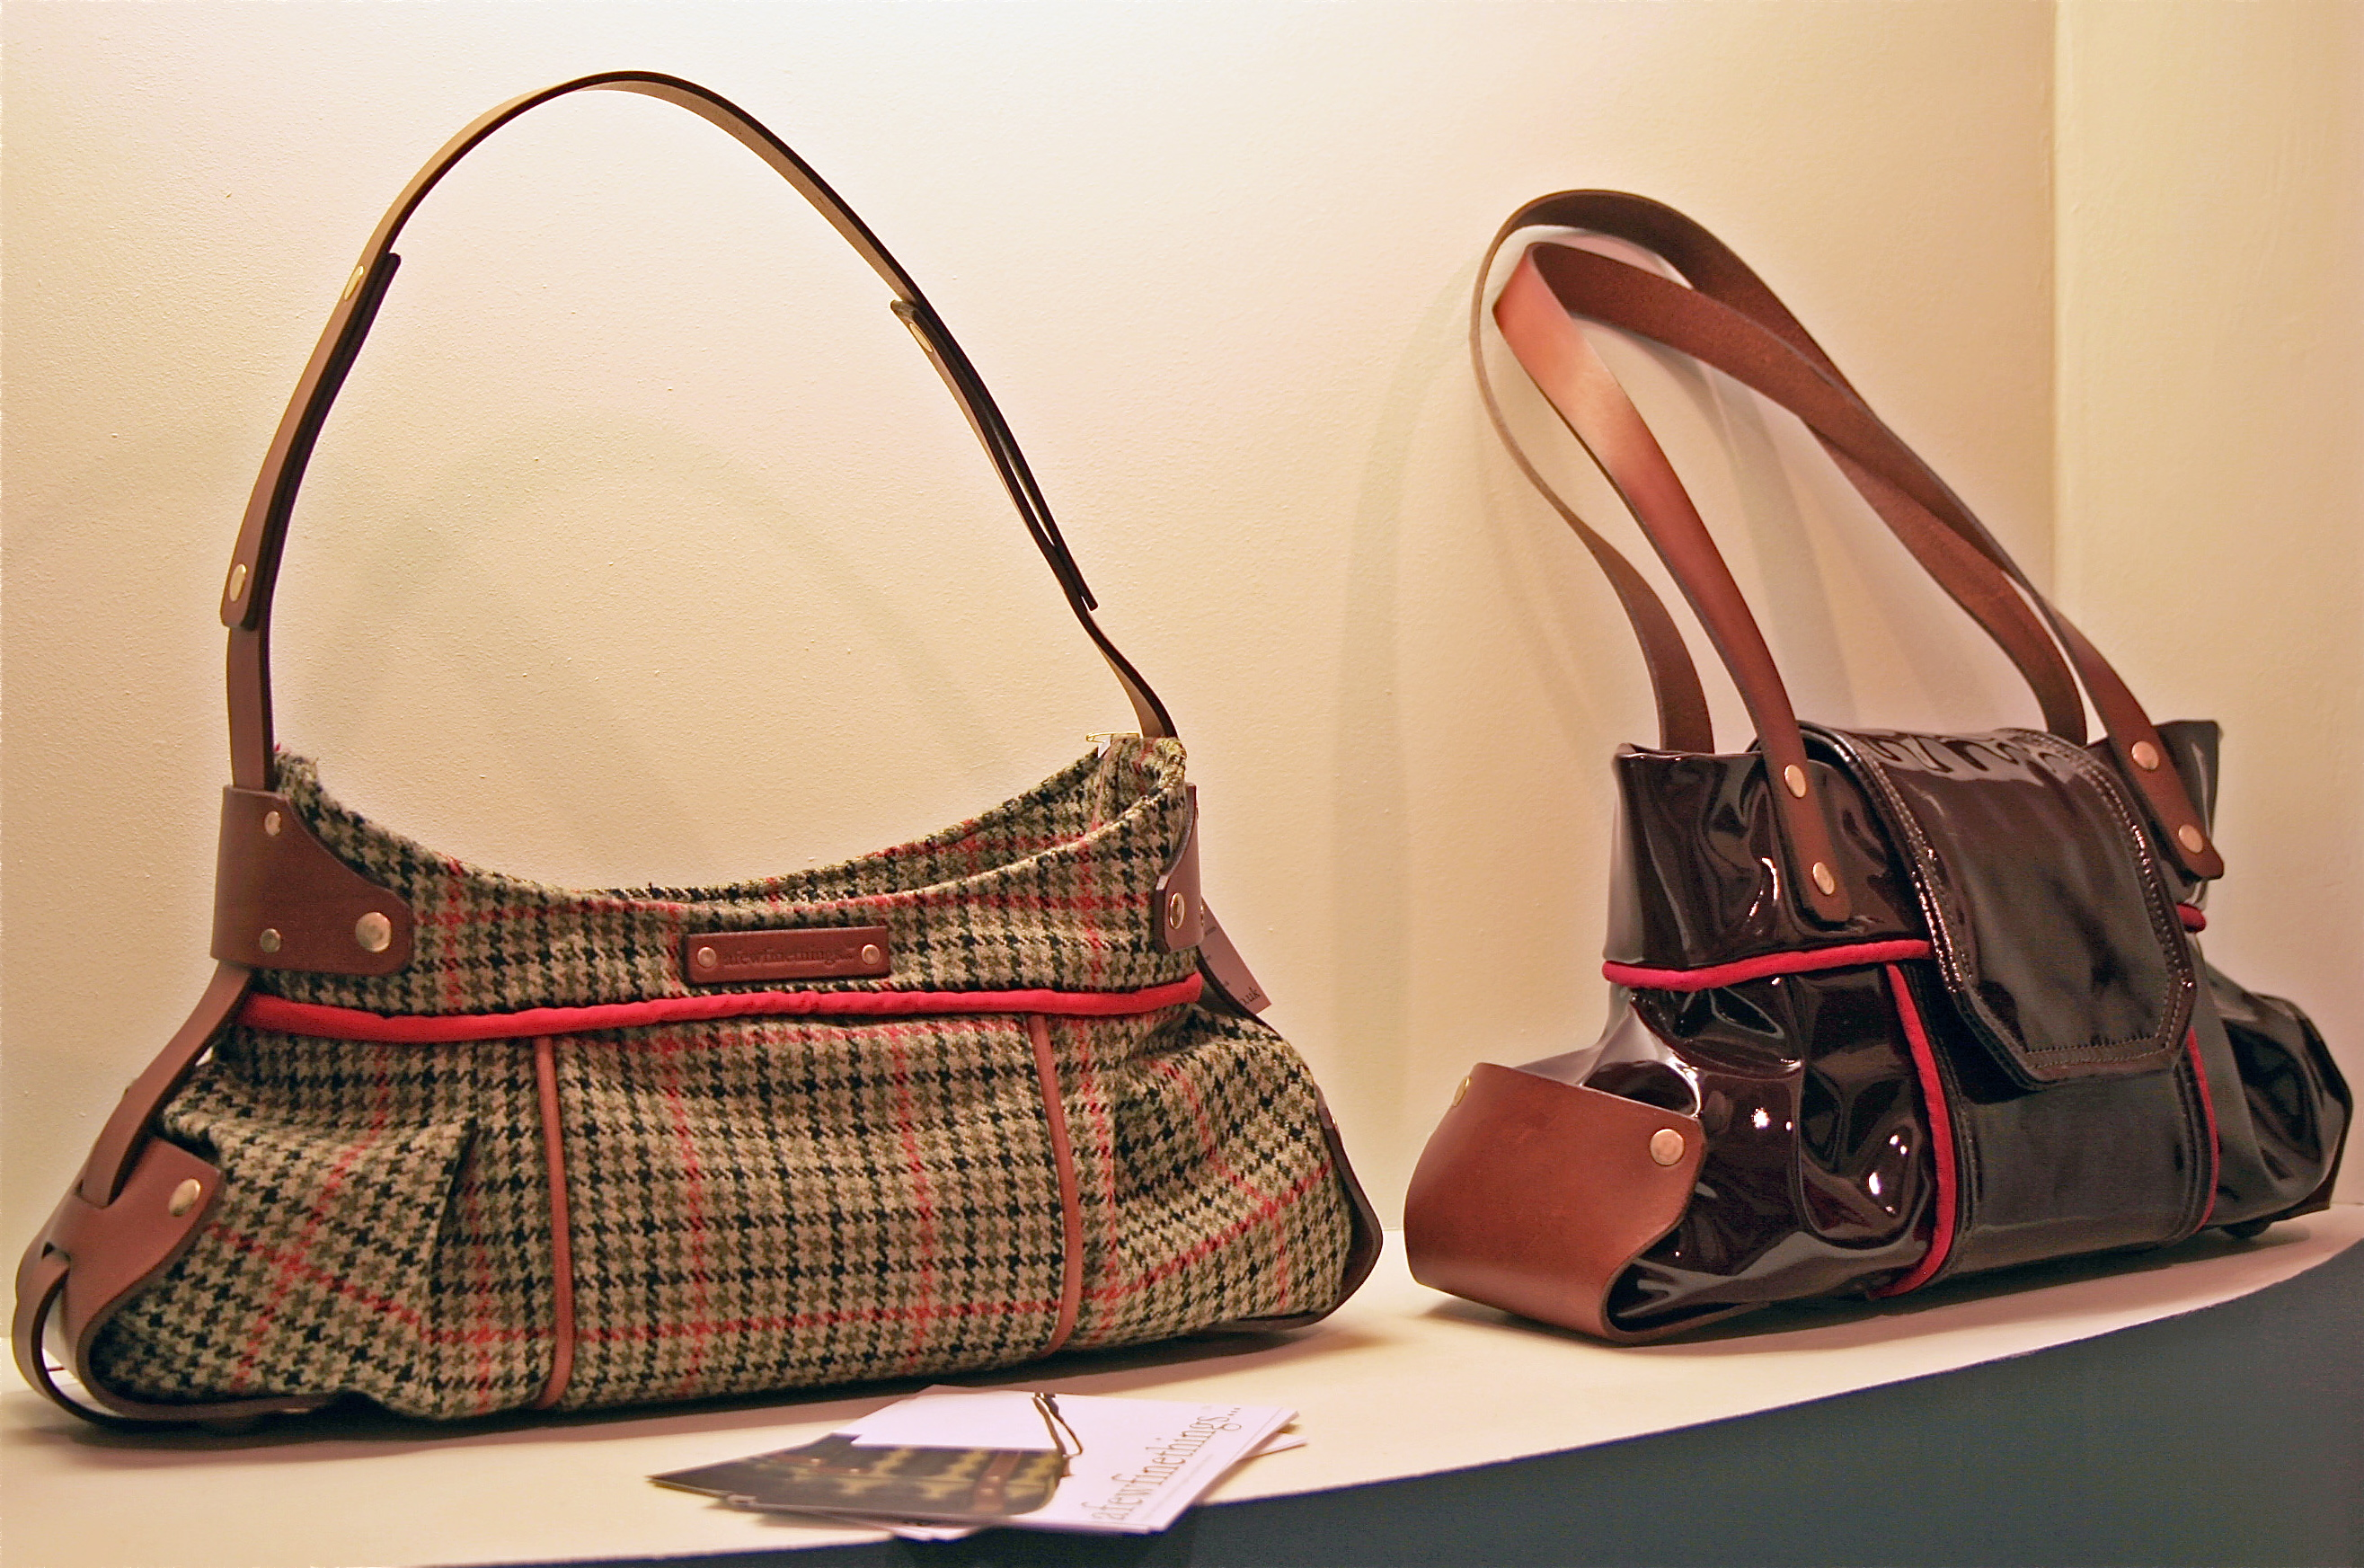 A Few Fine Things - Bags and accessories